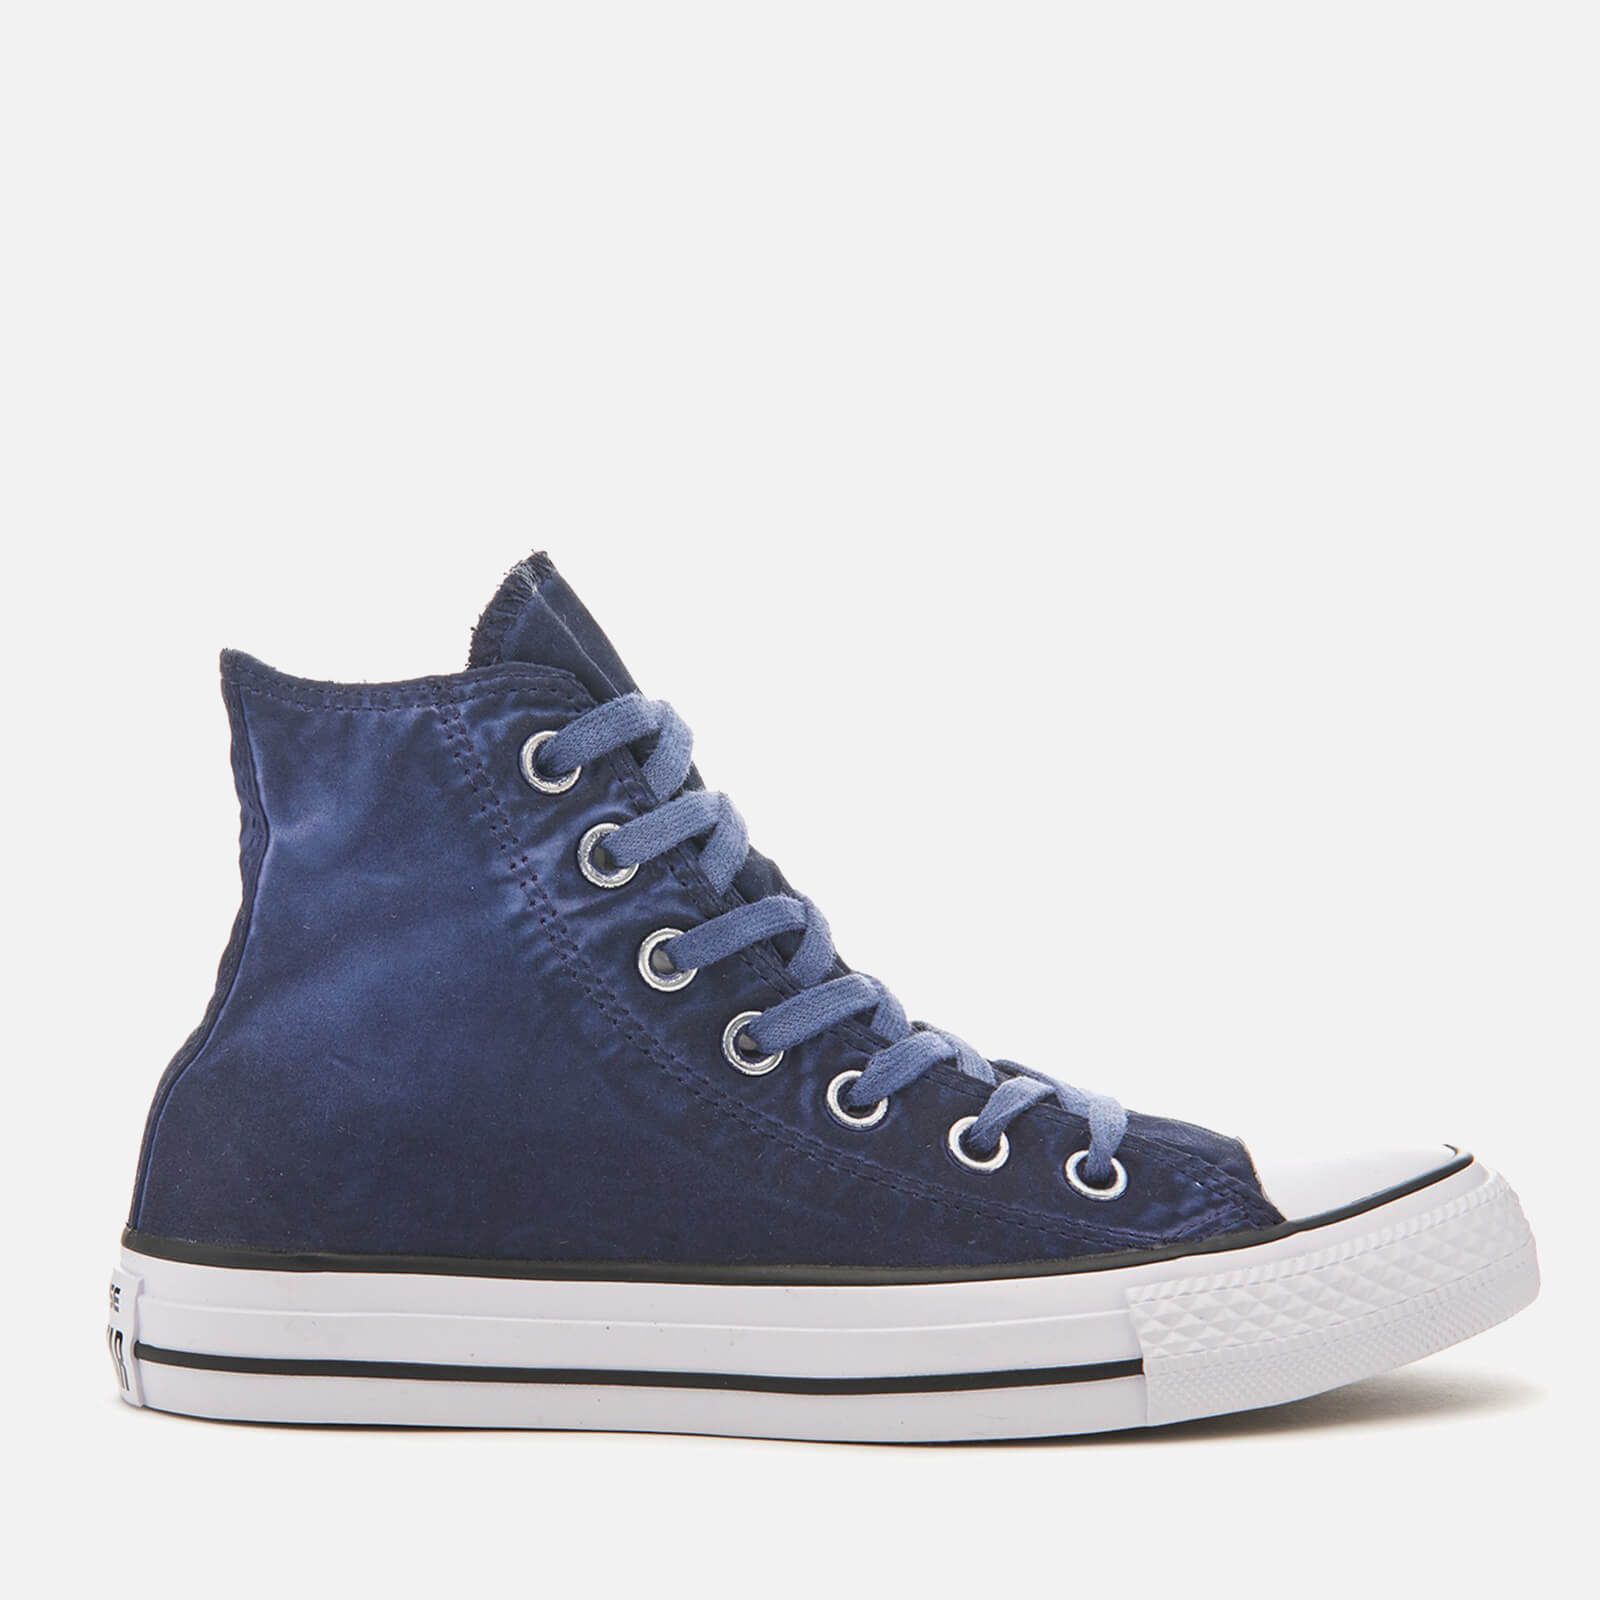 Allsole: 30% Off Converse Chuck Taylor All Star Hi-Top Trainers